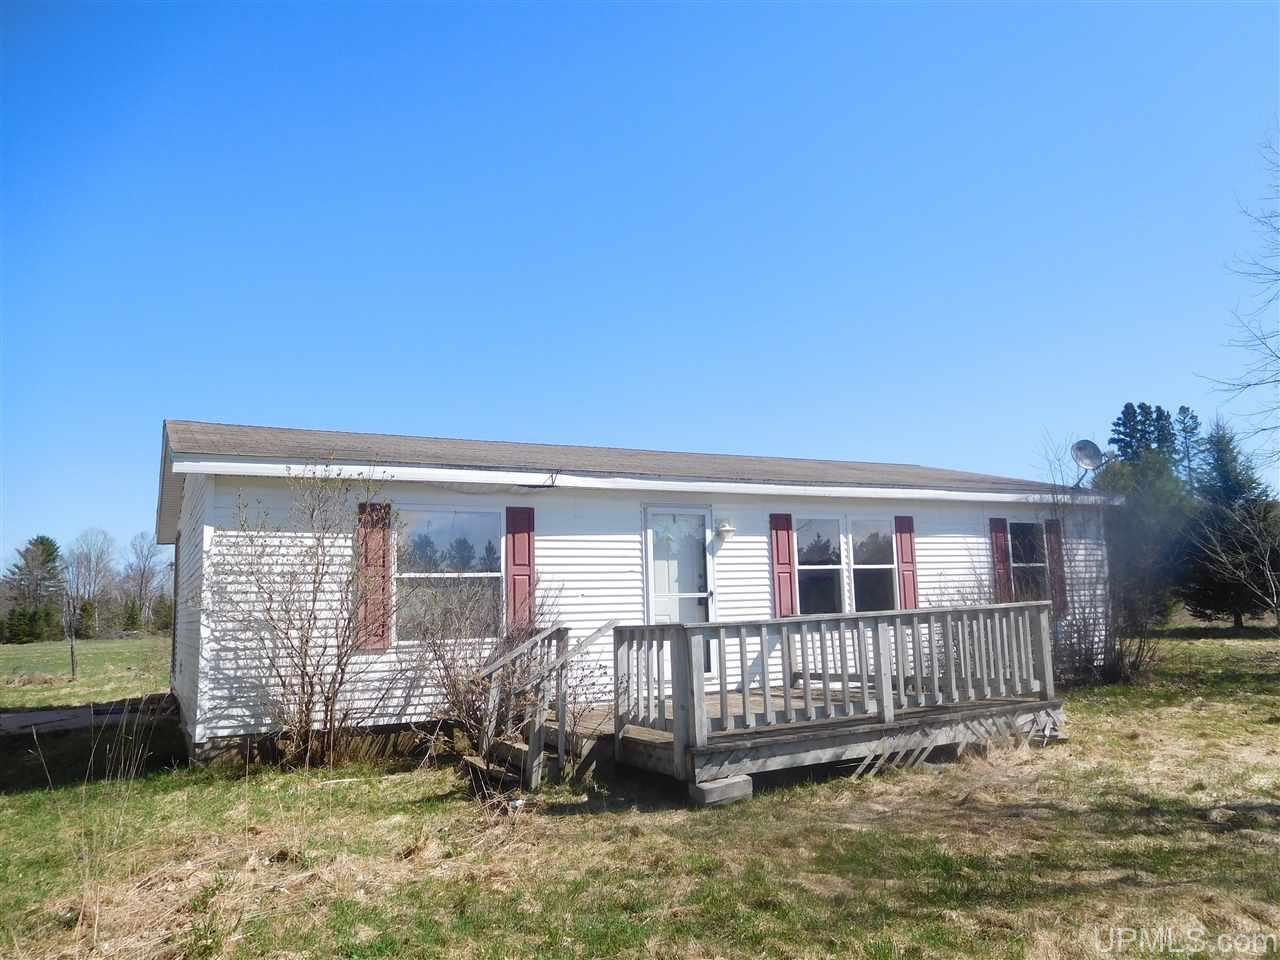 6484 Lunds Rd, Fence, WI 54121